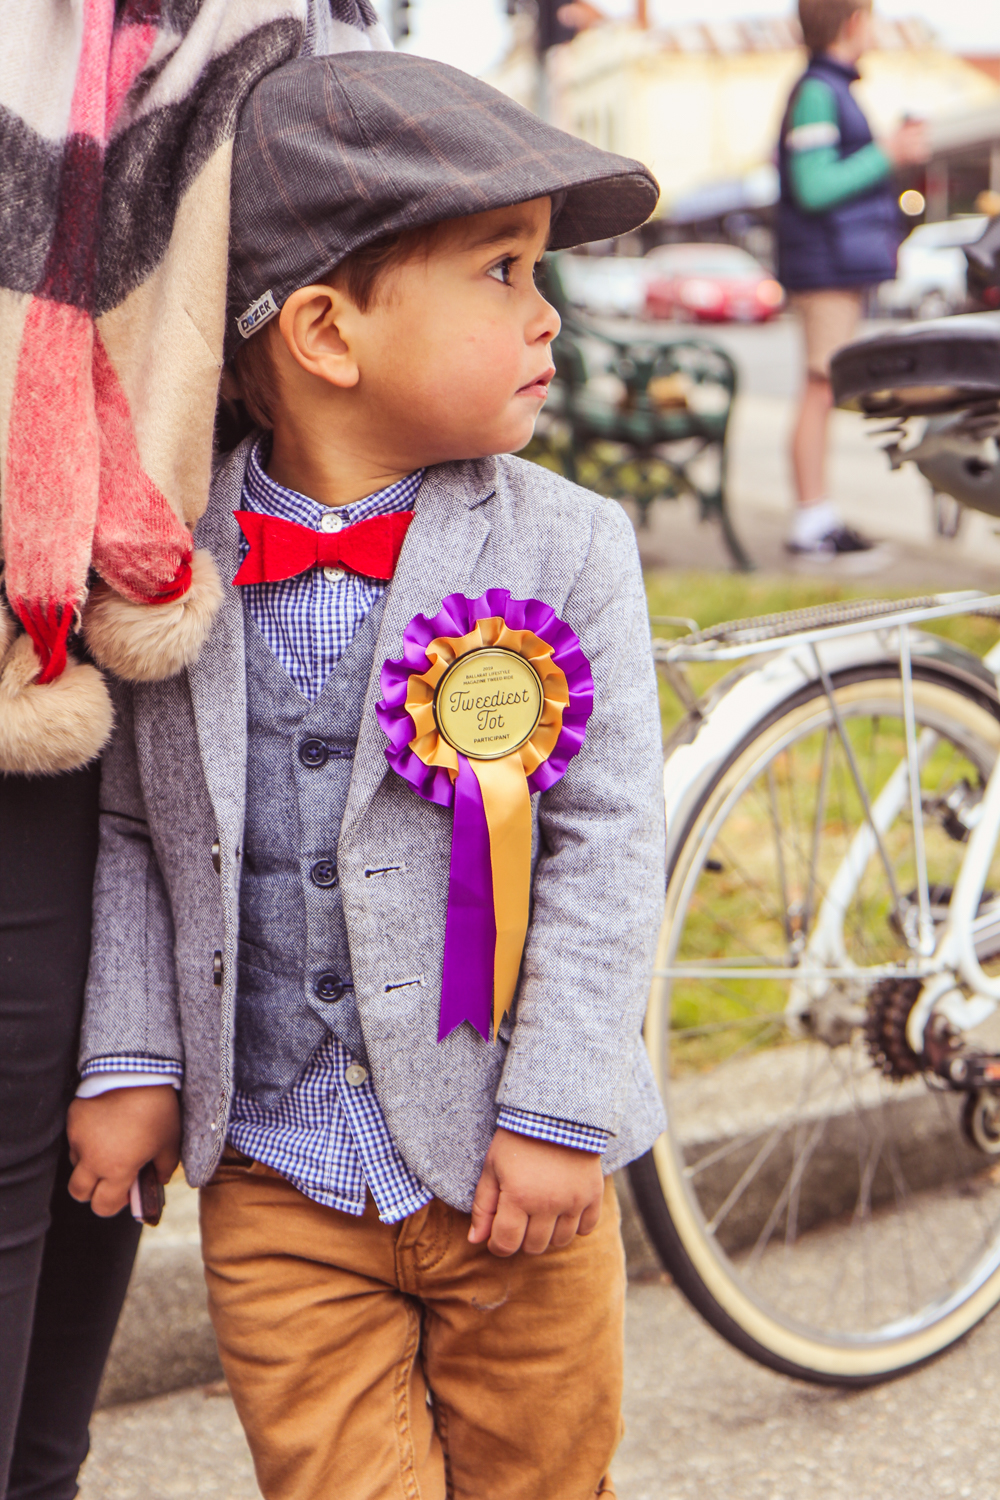 2019 Ballarat Tweed Ride